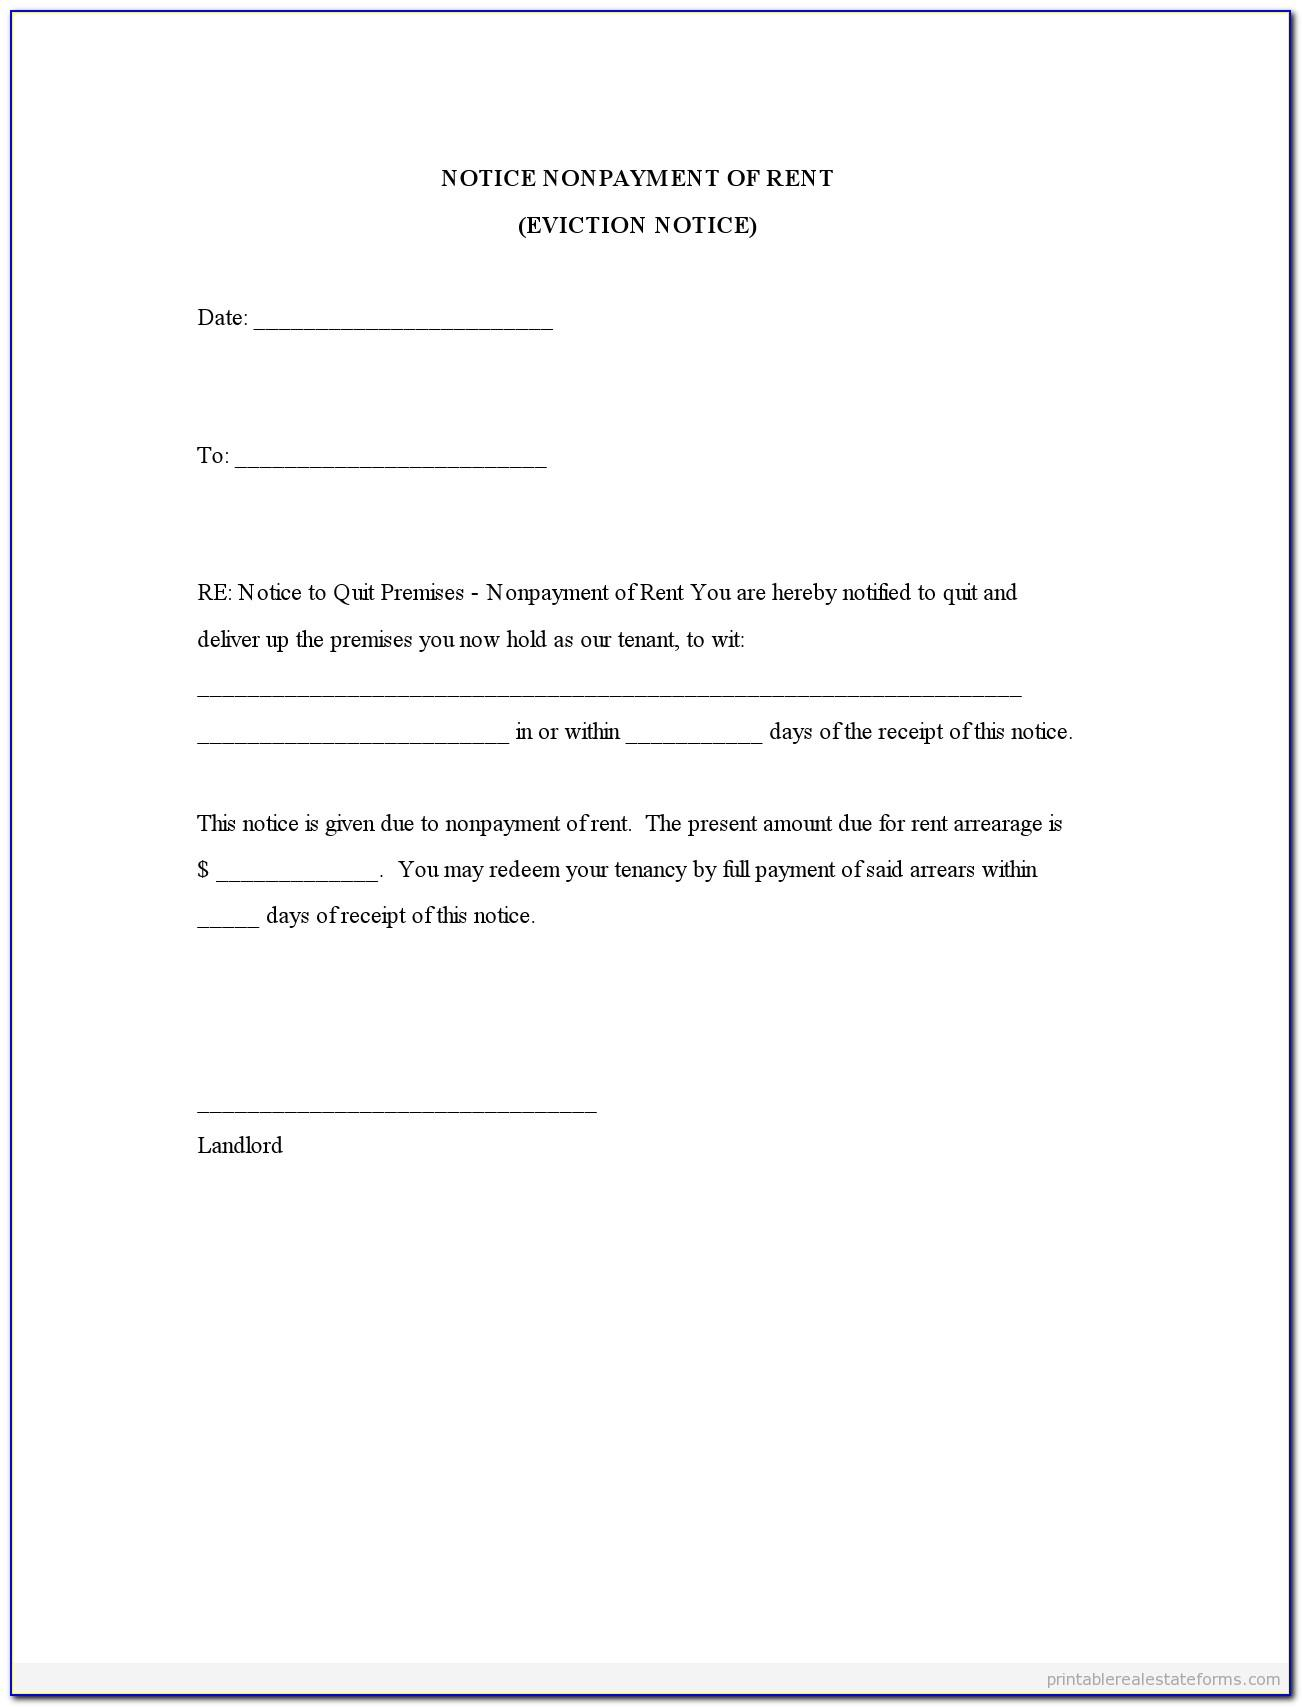 Lodger Eviction Letter Template Uk